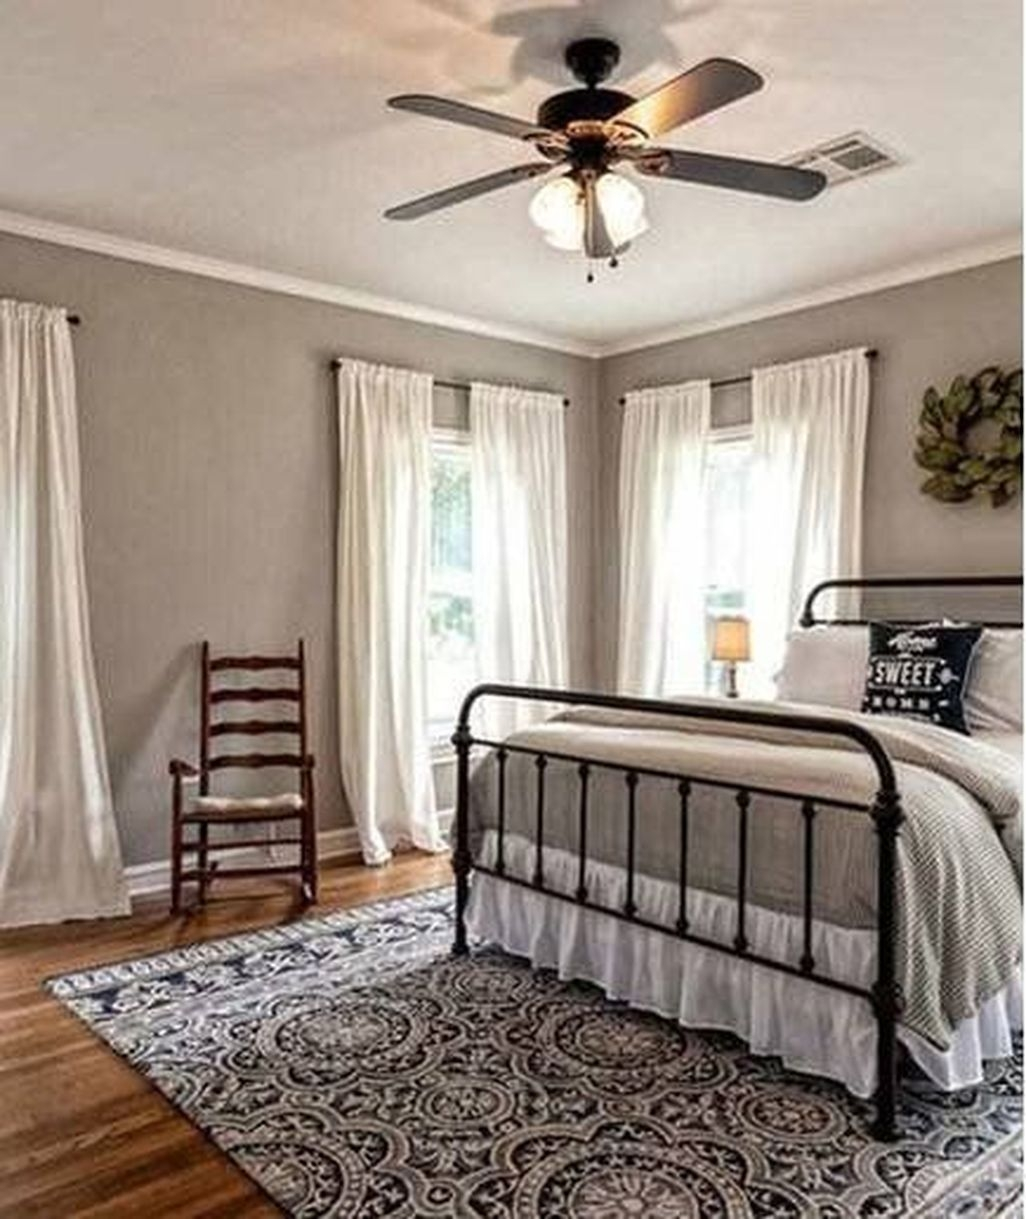 Vintage Nest Bedroom Decoration Ideas You Will Totally Love 16